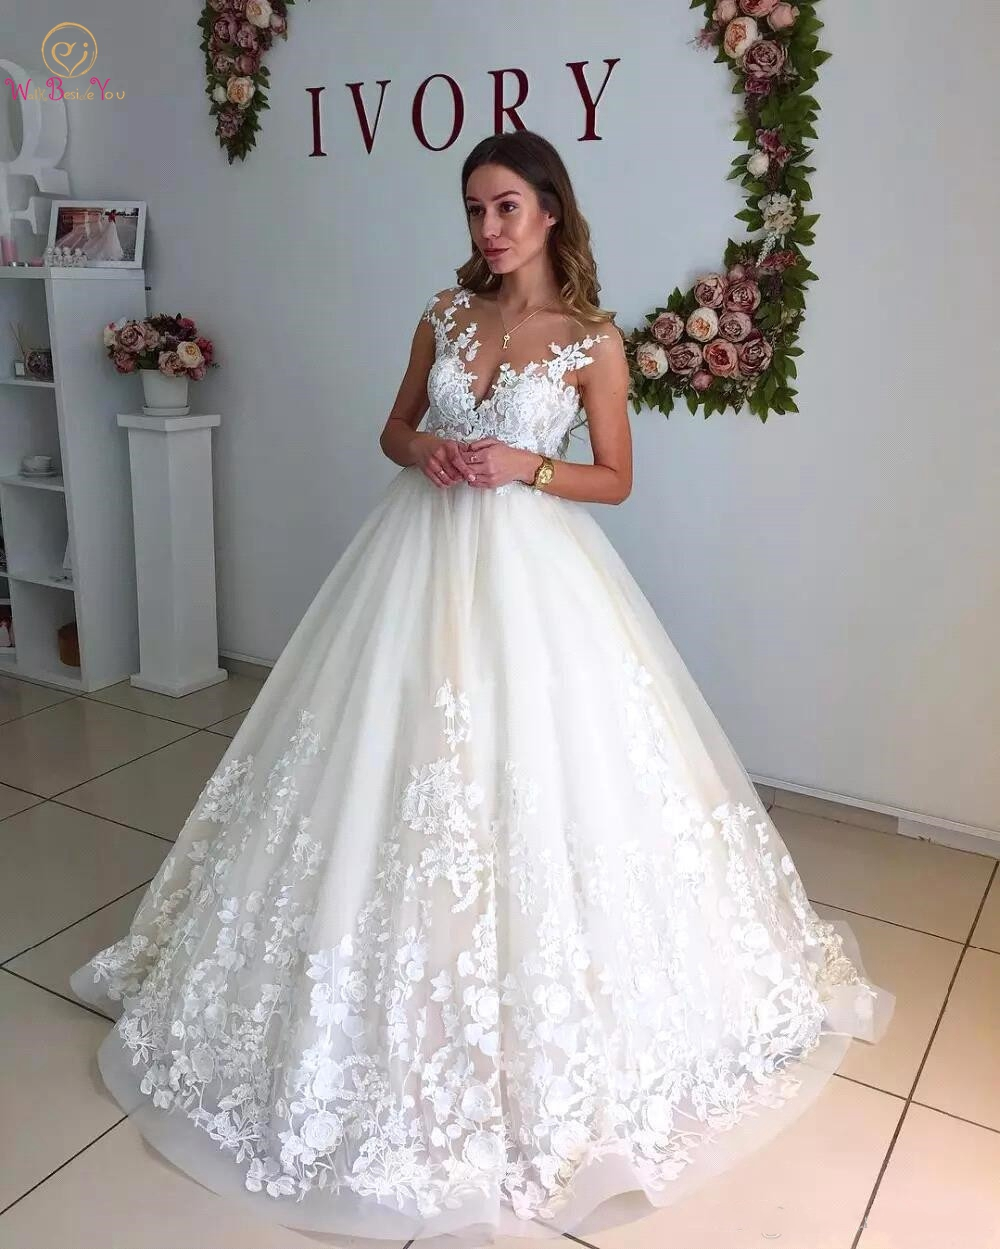 2020 Pregnant Wedding Dresses Elegant Lace Sheer Neck Capped Sleeve Maternity Backless Plus Size Customize Bridal Ball Gown